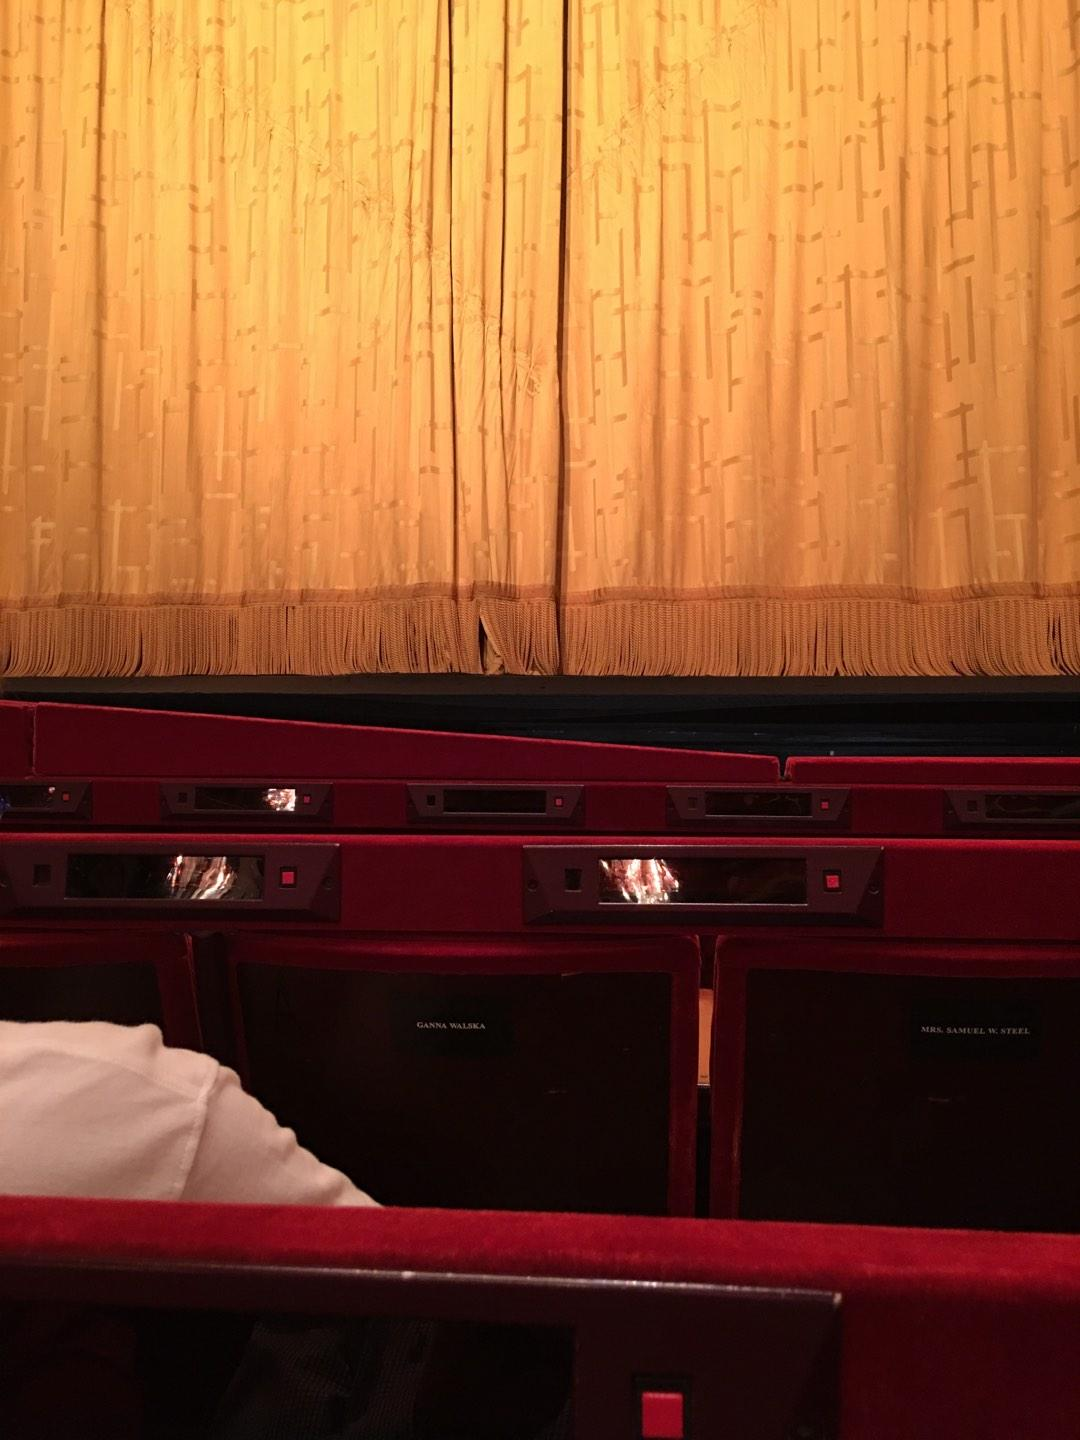 Metropolitan Opera House - Lincoln Center Section Orch Row C Seat 112